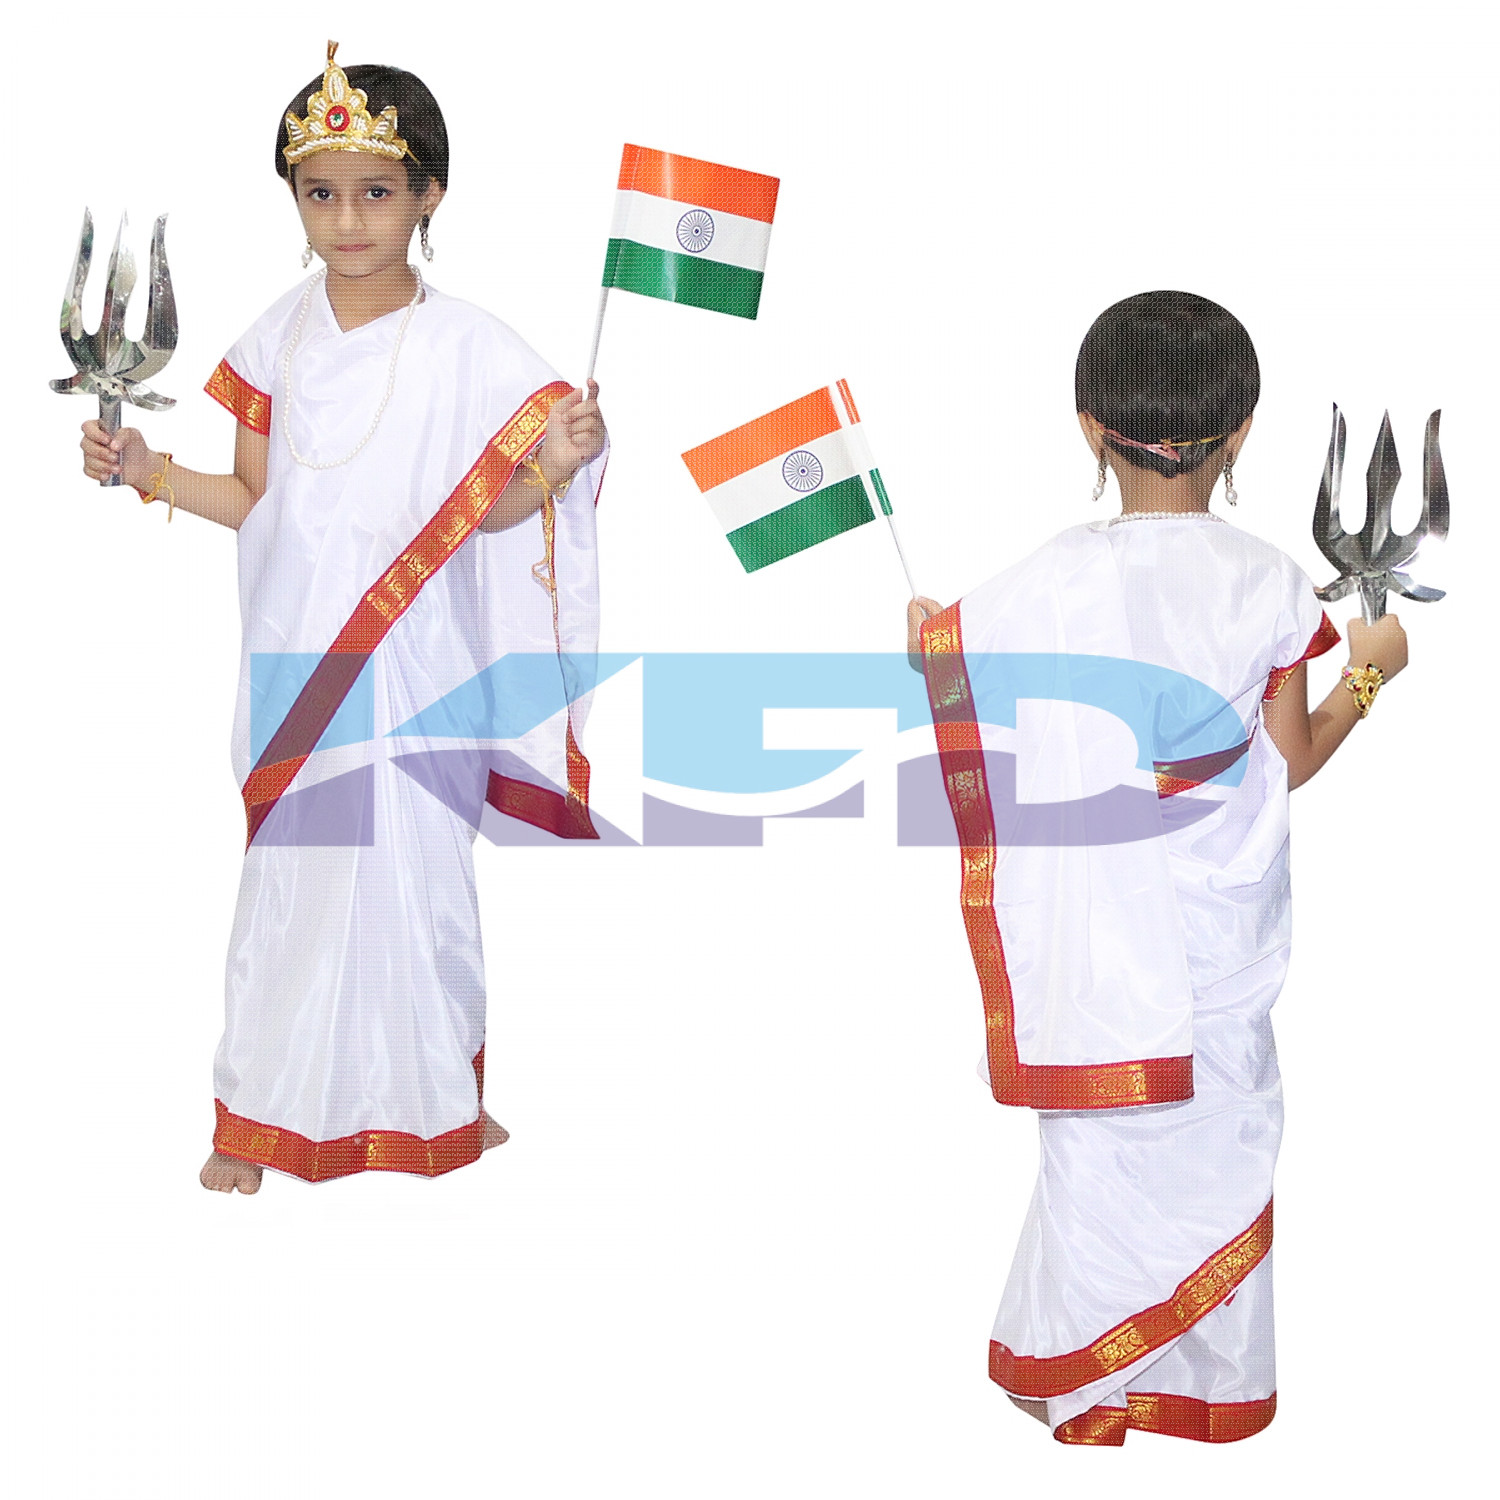 Bharat Mata fancy dress for kids,National Hero Costume for School Annual function/Theme Party/Competition/Stage Shows Dress